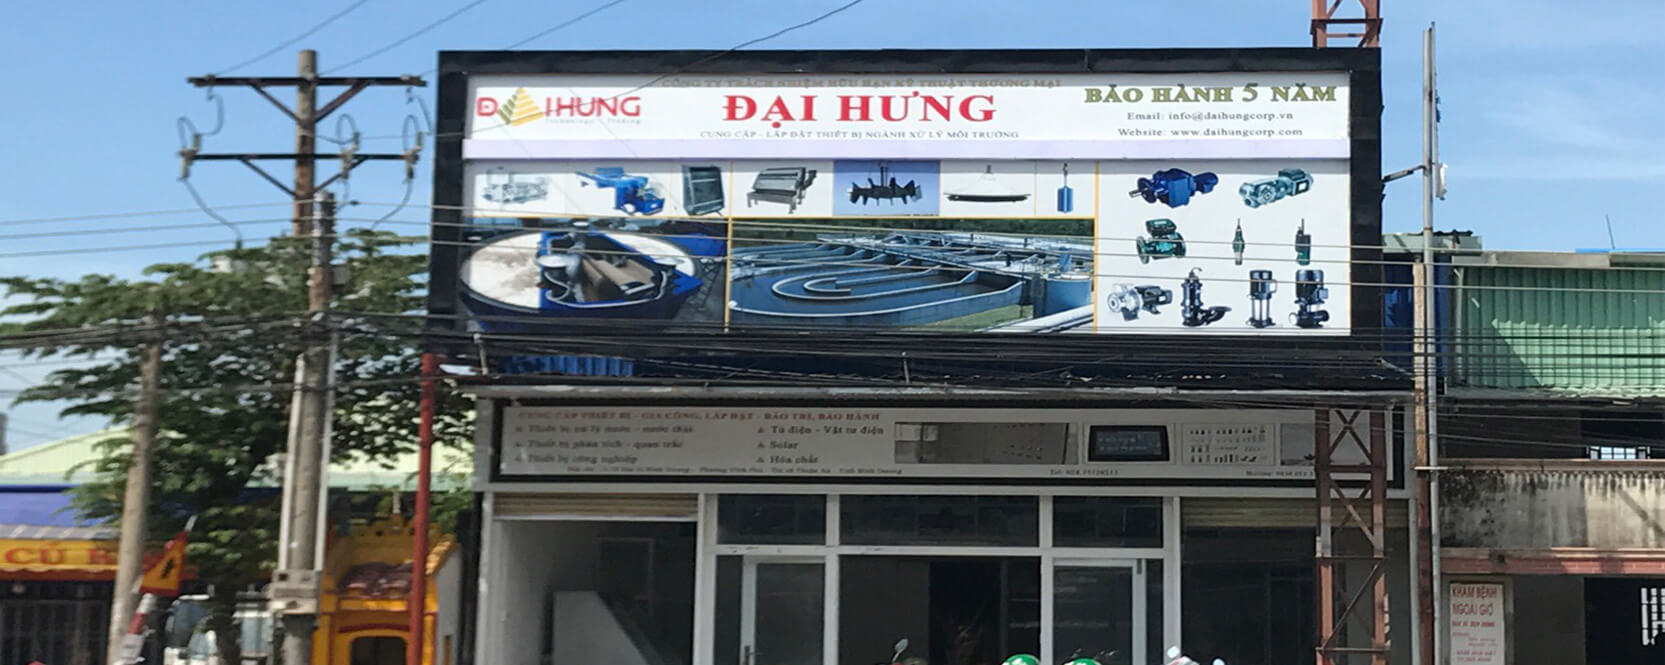 Dai Hung Showroom